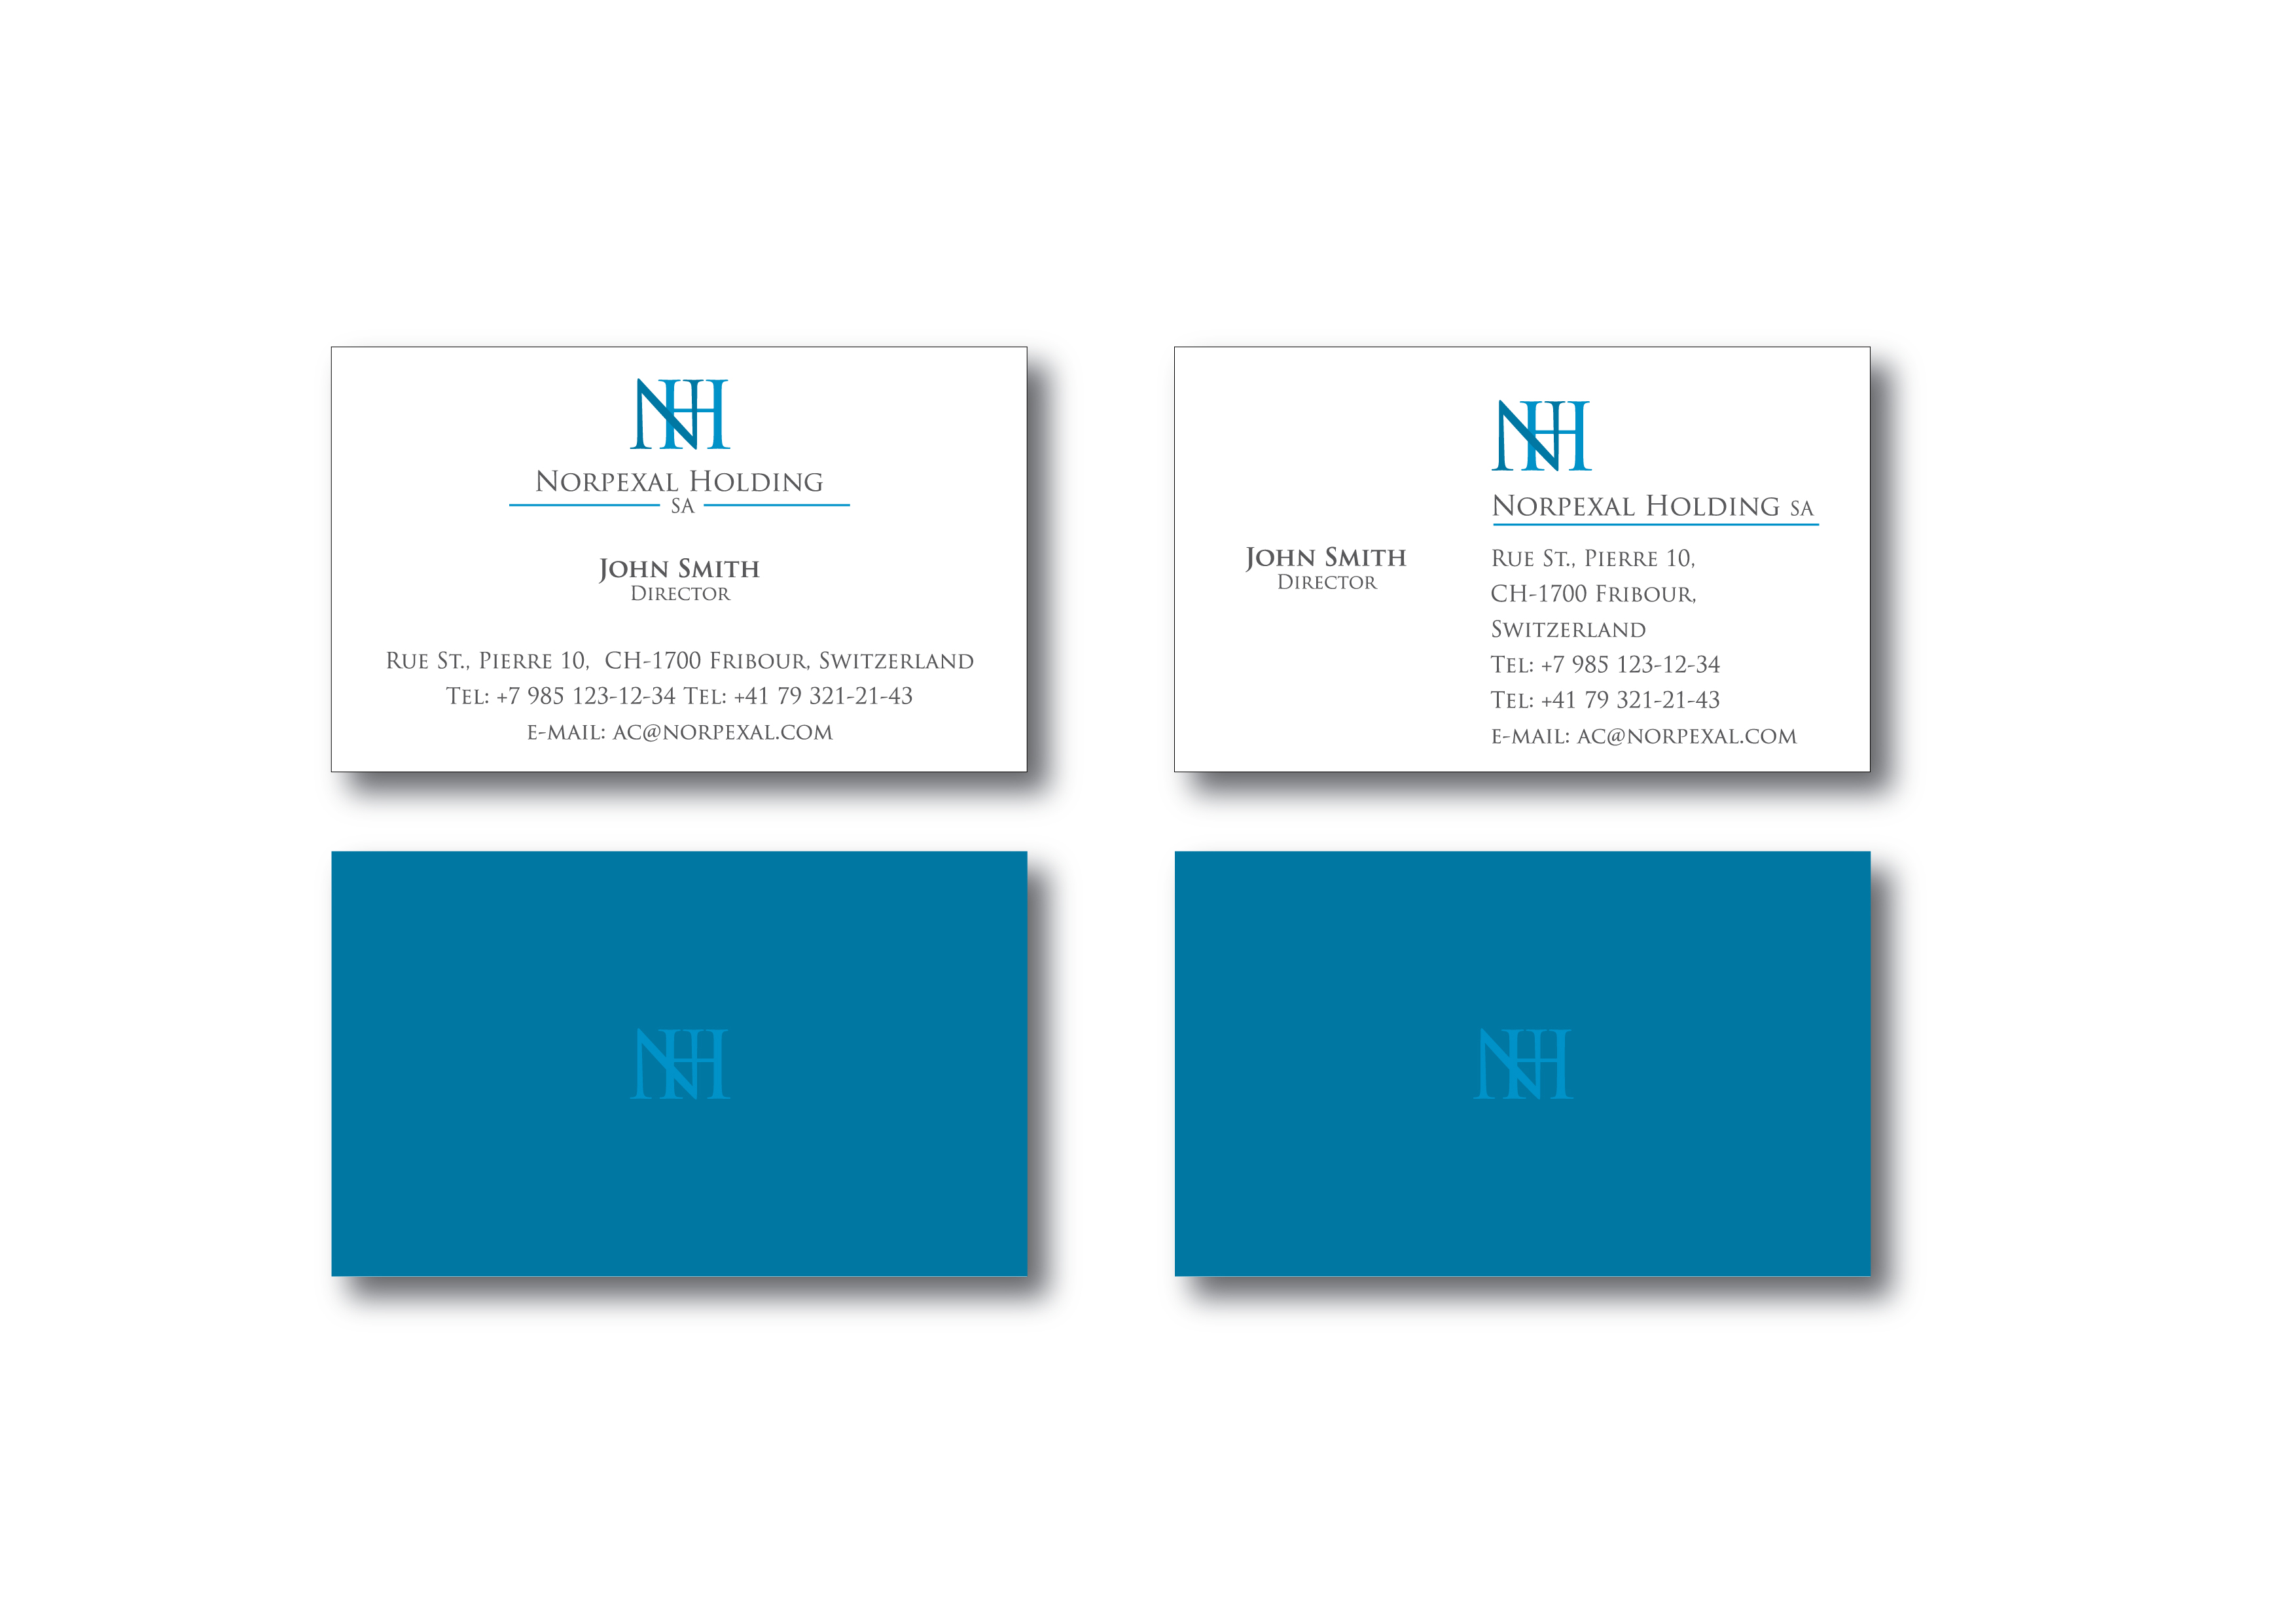 How much should a freelance graphic designer charge for business business business card design for a company by s r graphic design rh designcrowd com reheart Gallery